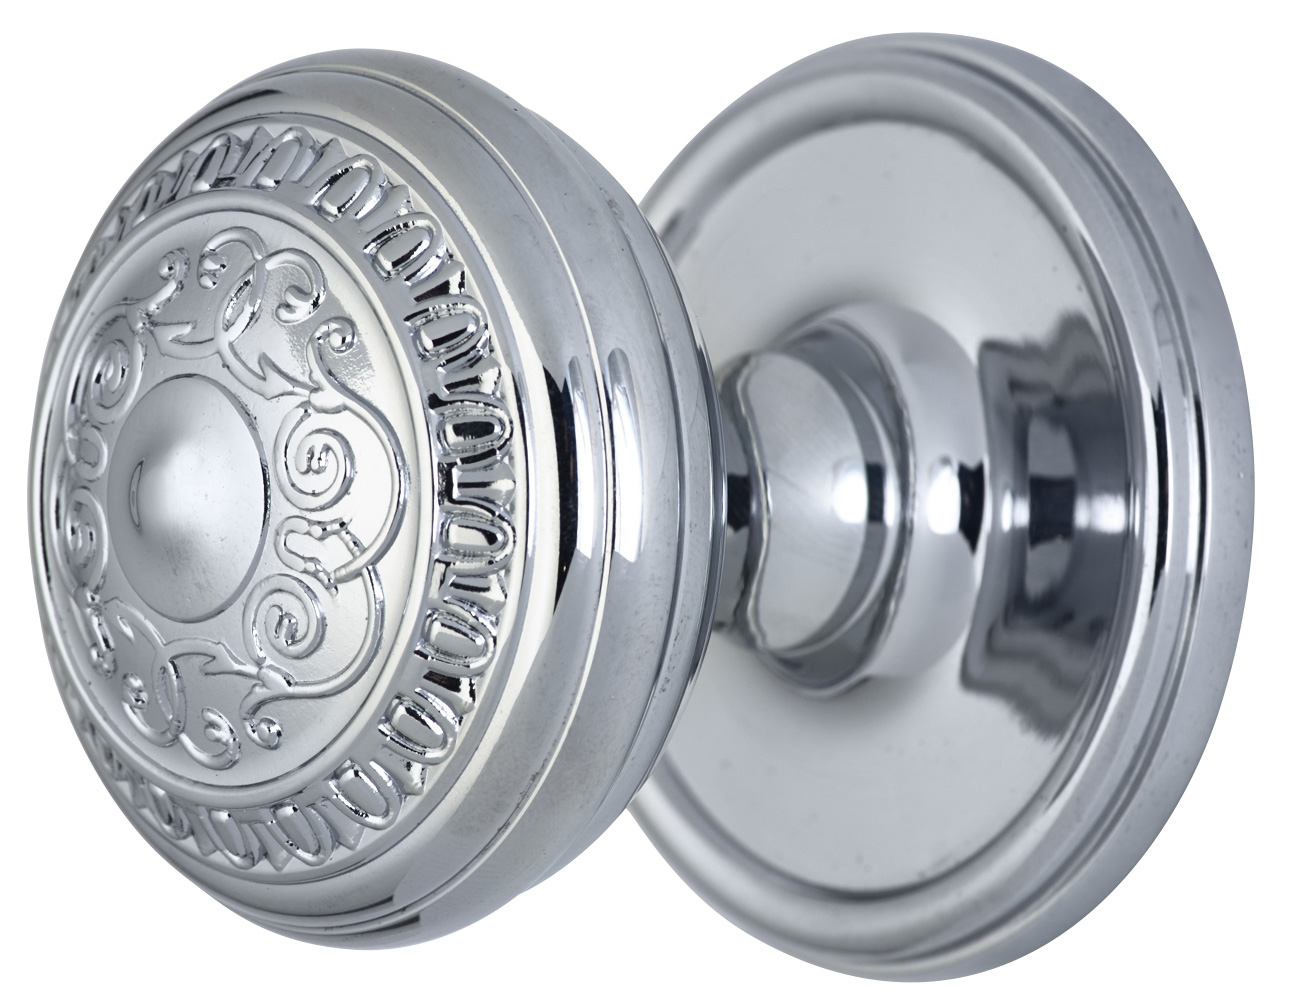 2 Inch Romanesque Door Knob With Victorian Style Rosette (Polished Chrome Finish)